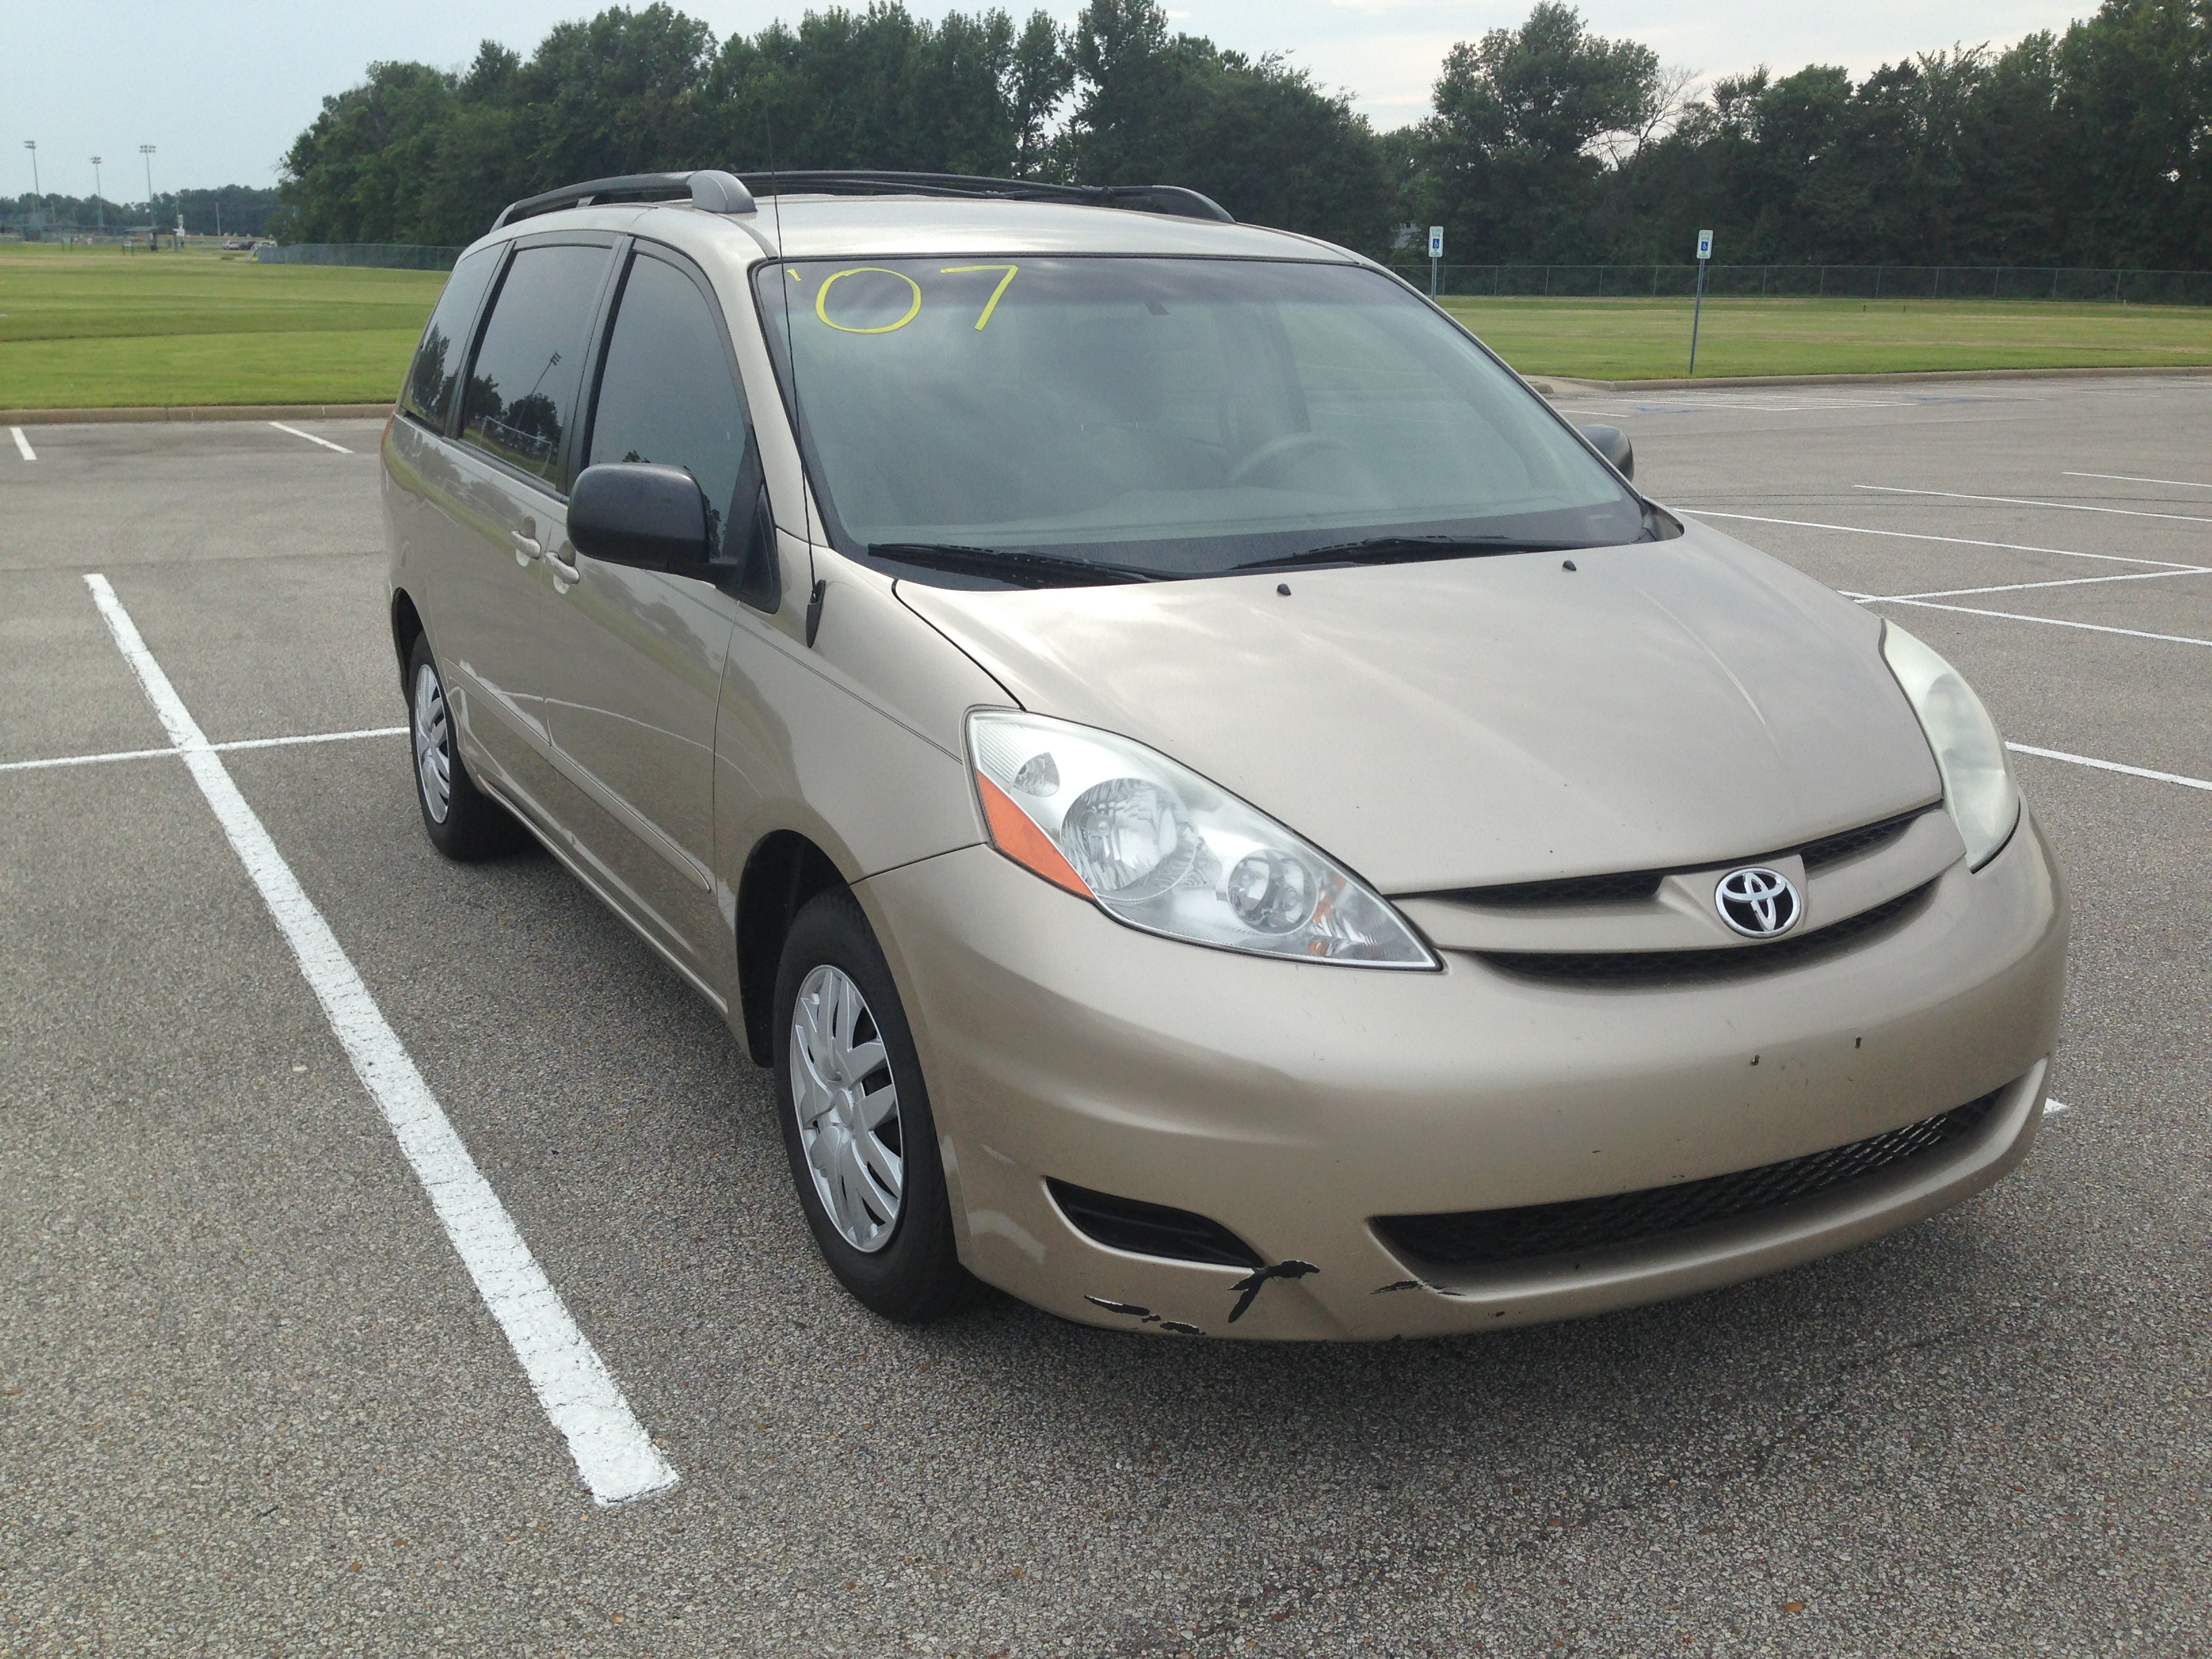 sienna vehicles auto toyota access minivan showing the lady car side seat view